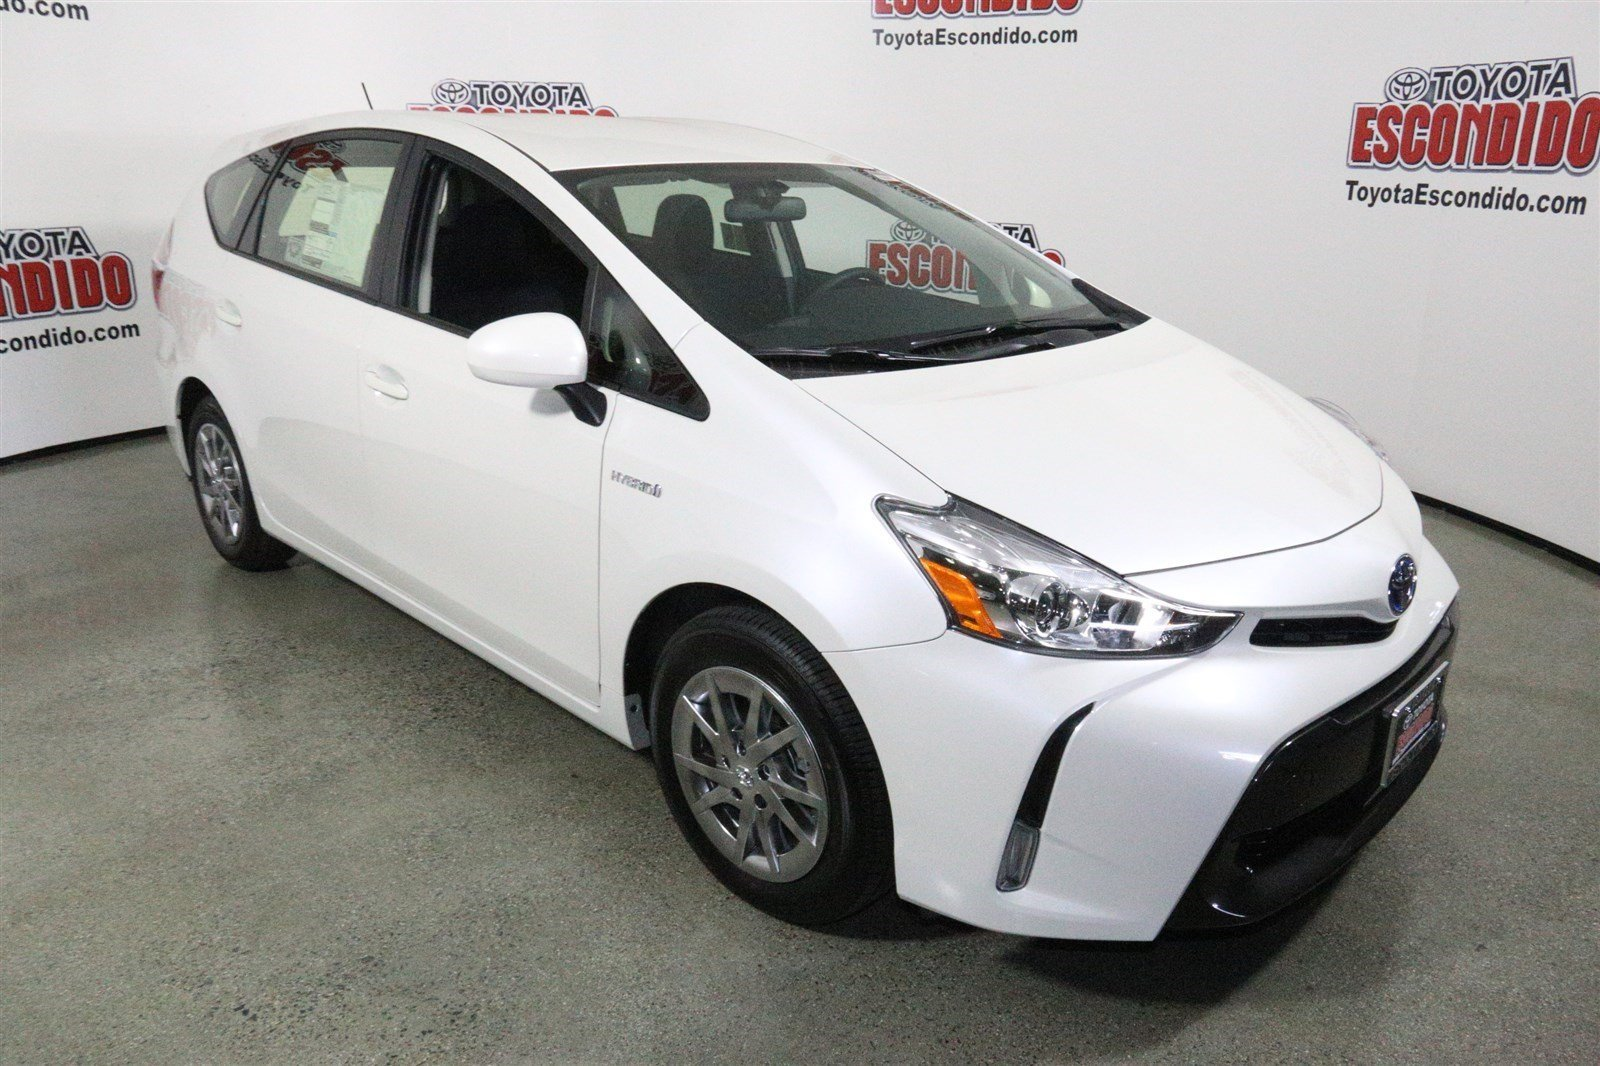 new 2017 toyota prius v three station wagon in escondido 1012817 toyota escondido. Black Bedroom Furniture Sets. Home Design Ideas